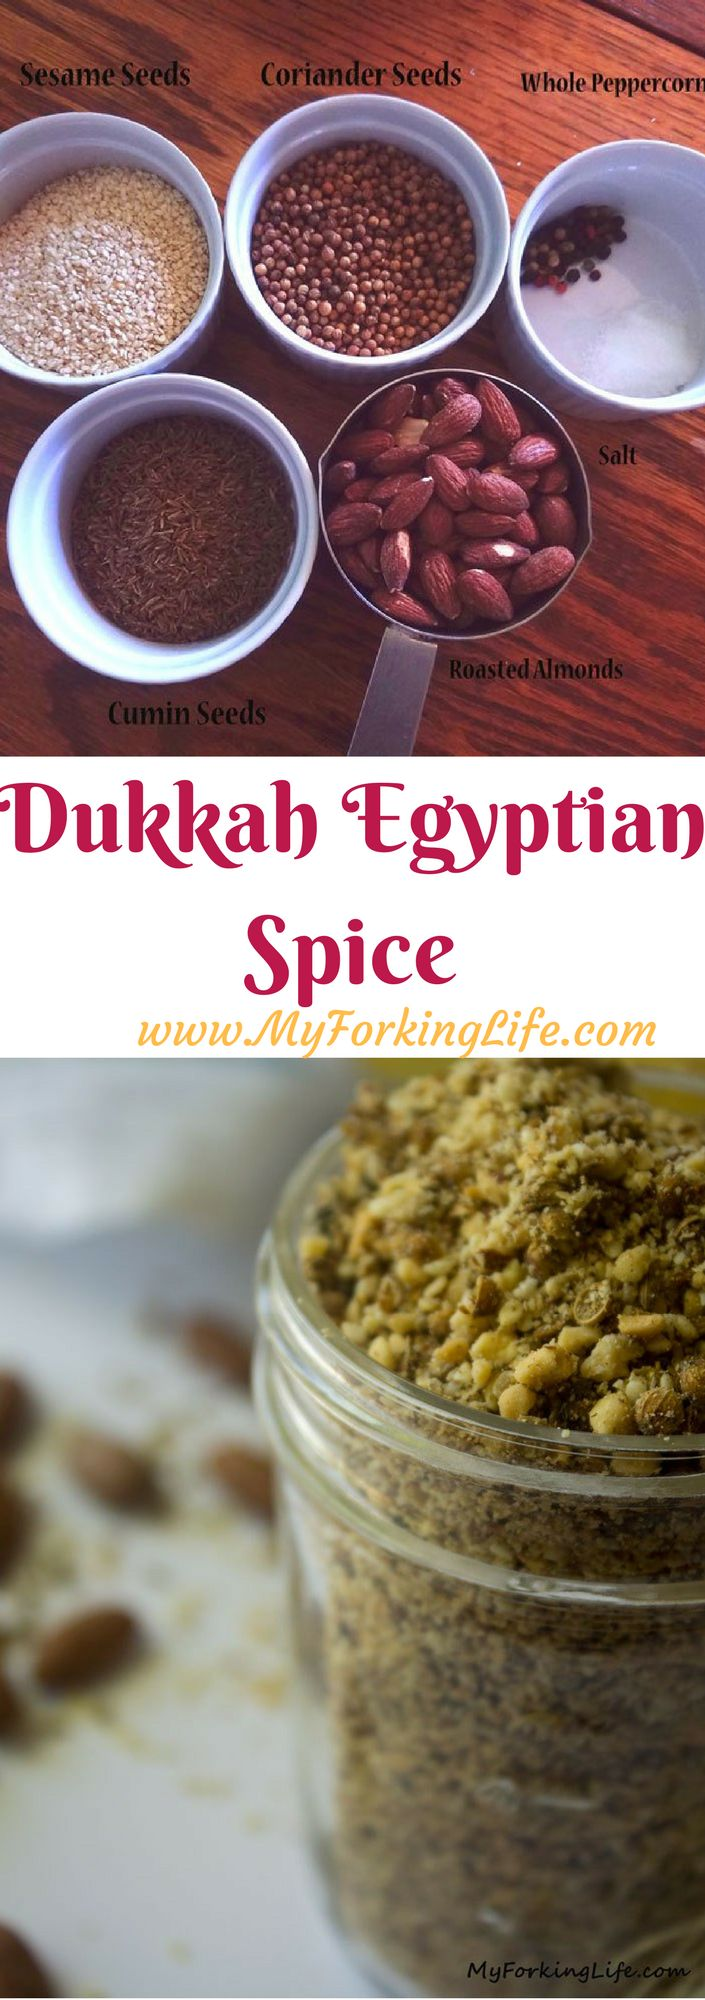 Dukkah Egyptian Spice Mix. Perfect spice mix for Poultry, Meats, and Vegetables. dukkah spice.